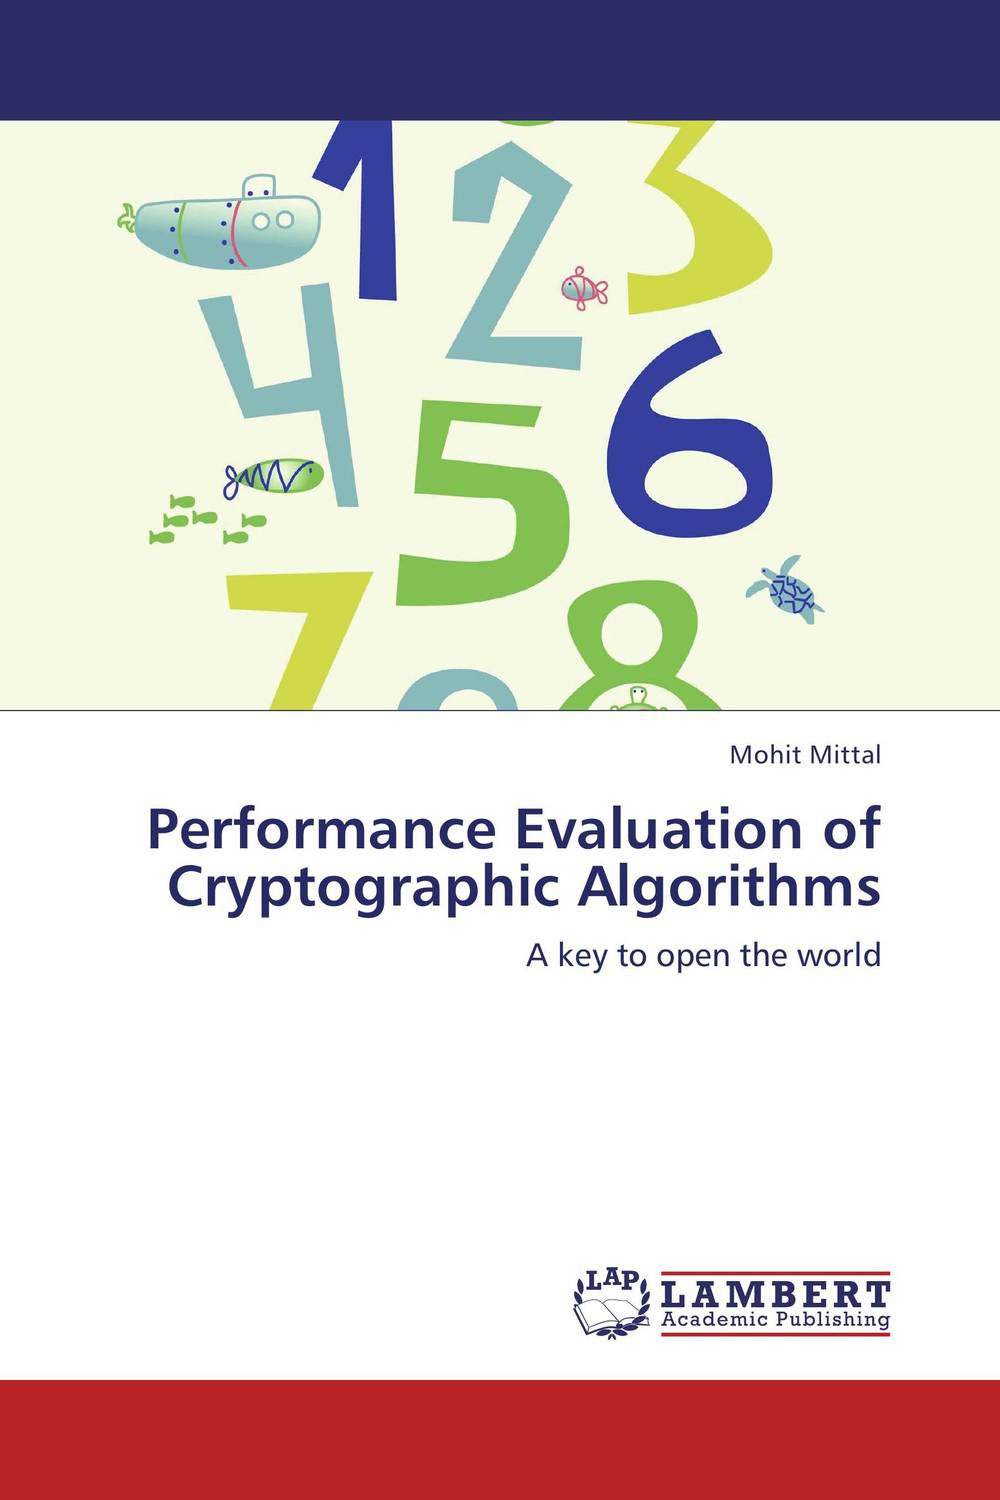 Performance Evaluation of Cryptographic Algorithms david parmenter key performance indicators